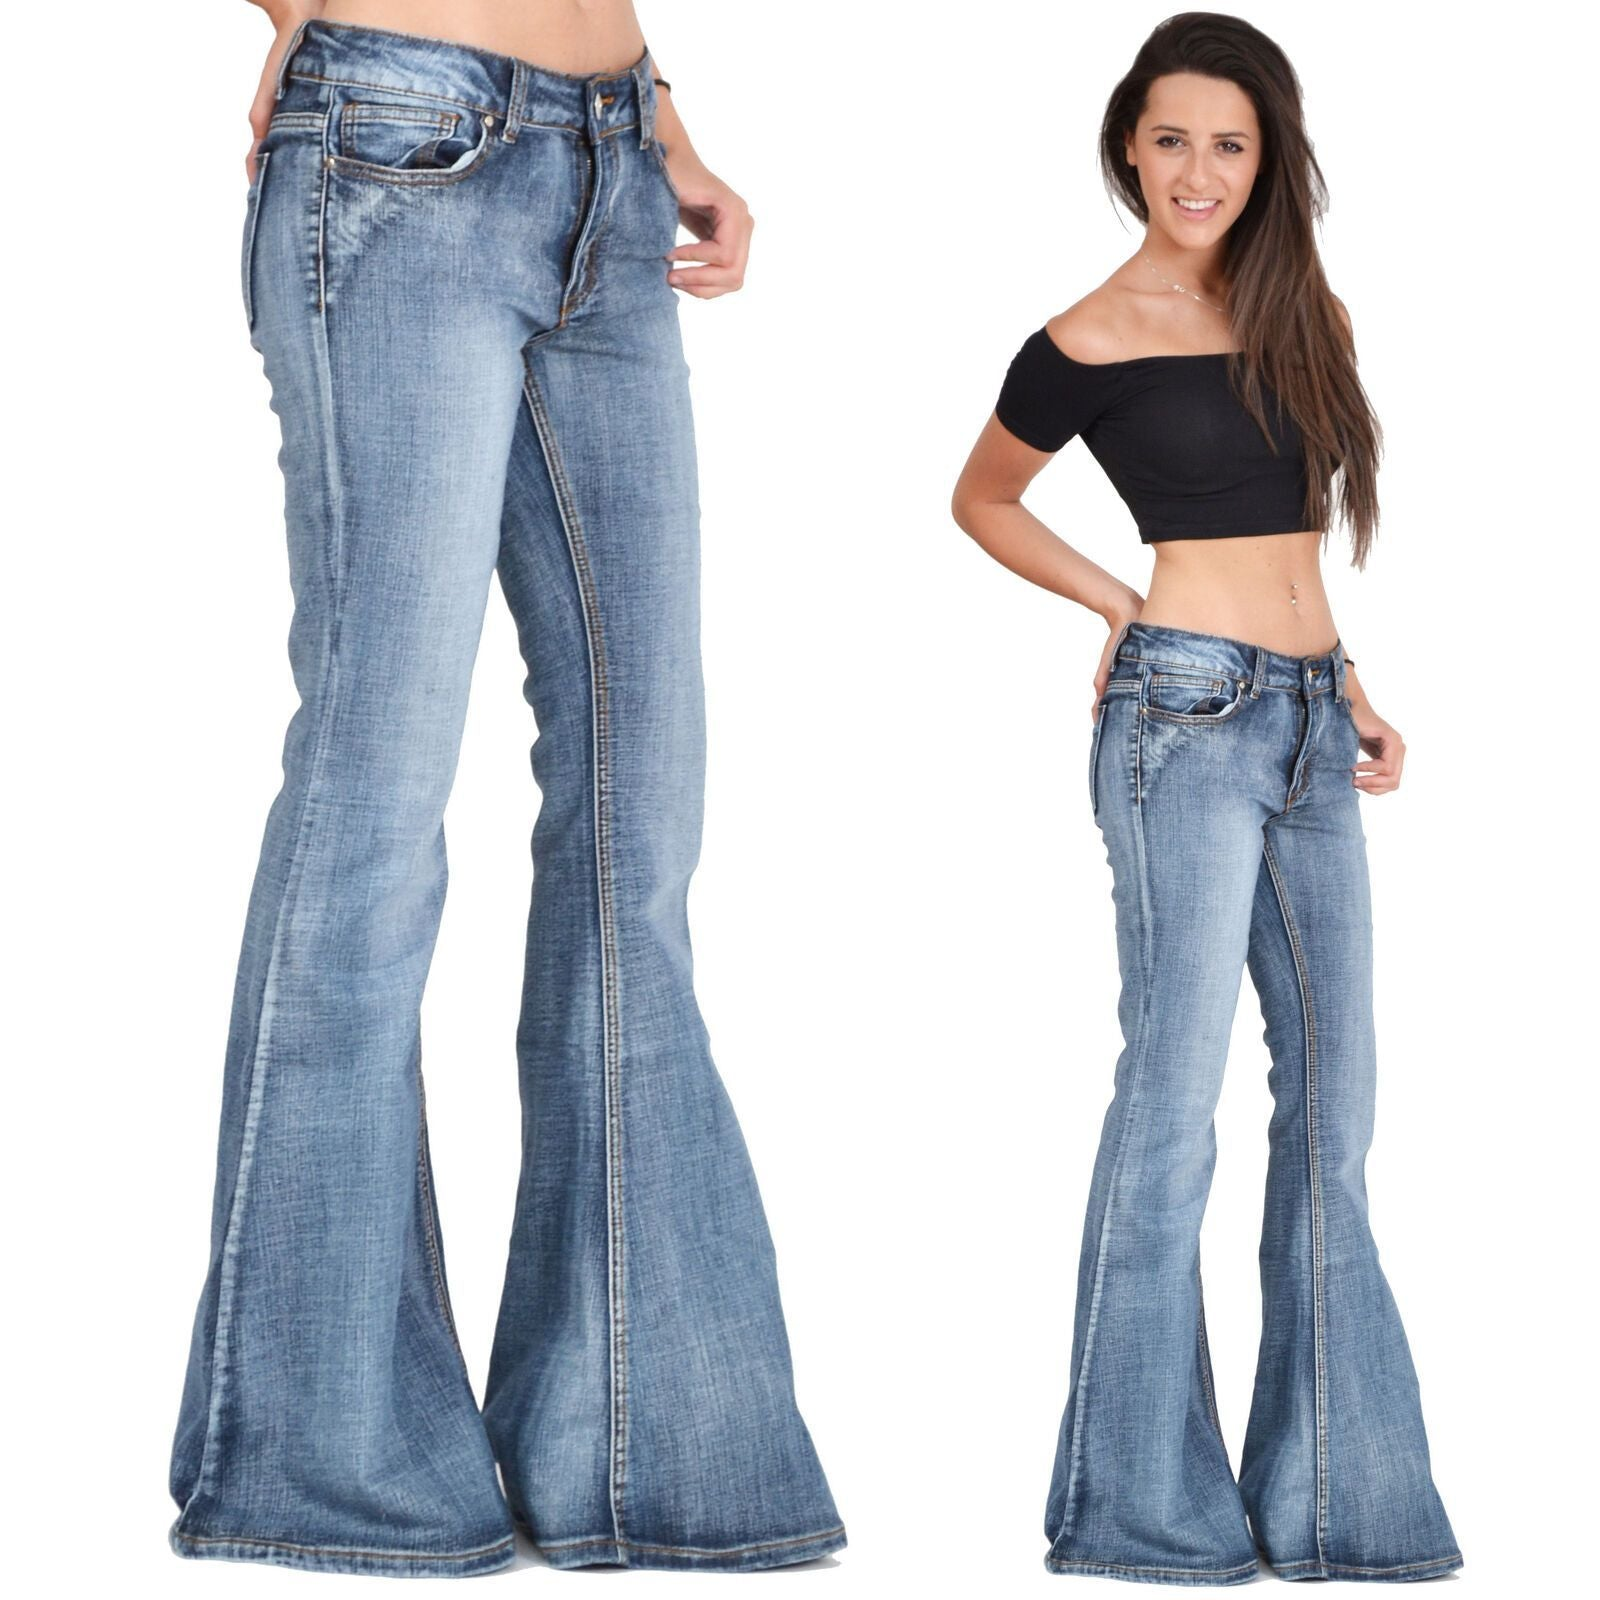 60s Faded Denim Hip Hugger Bell Bottoms Jeans